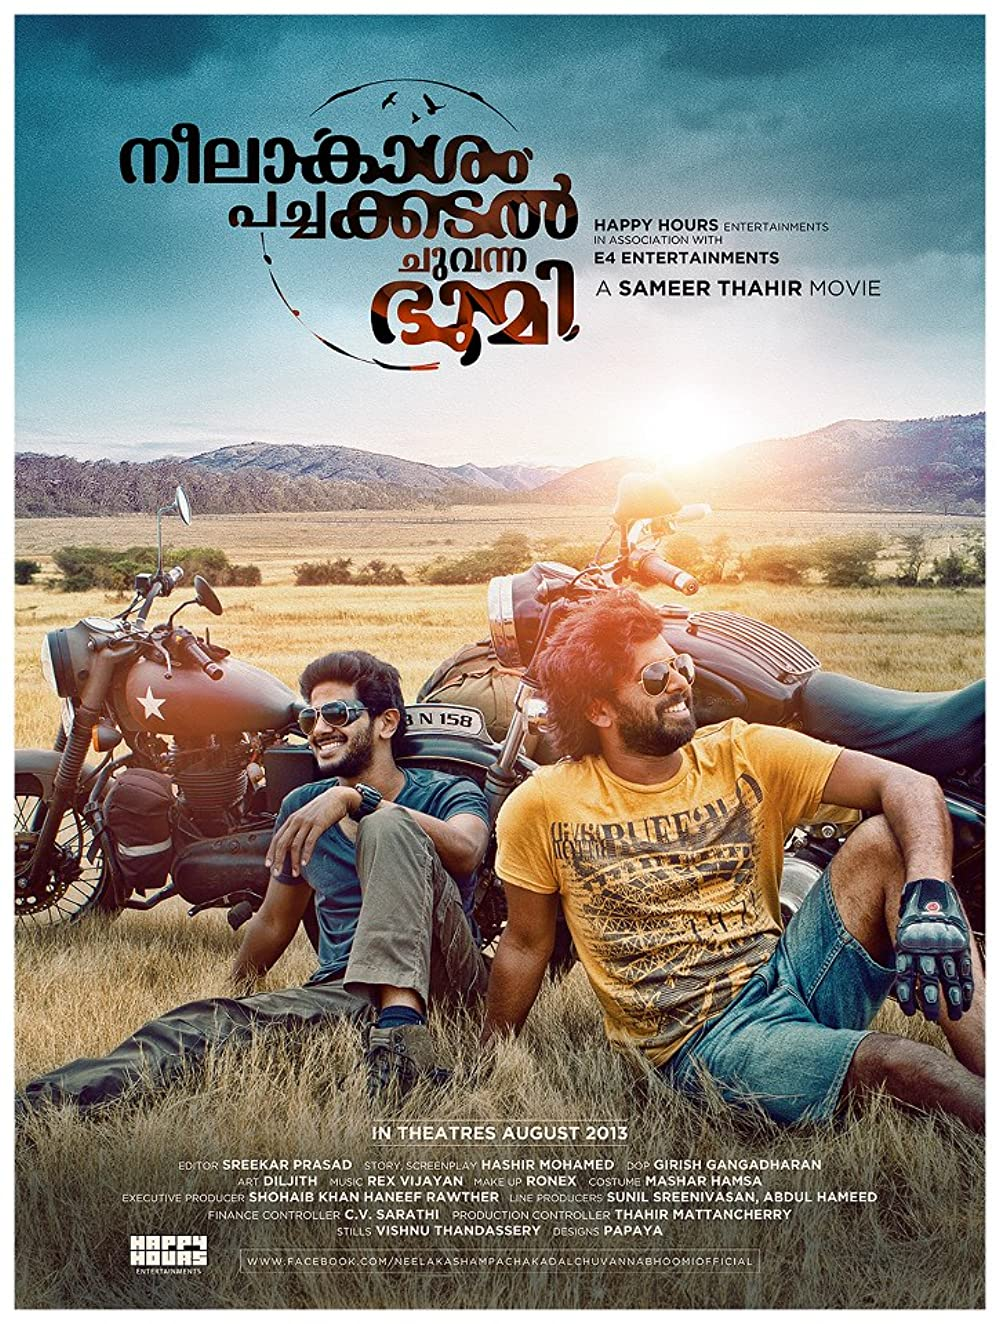 Neelakasham Pachakadal Chuvanna Bhoomi 2021 Hindi Dubbed 720p HDRip ESubs 1.4GB x264 AAC